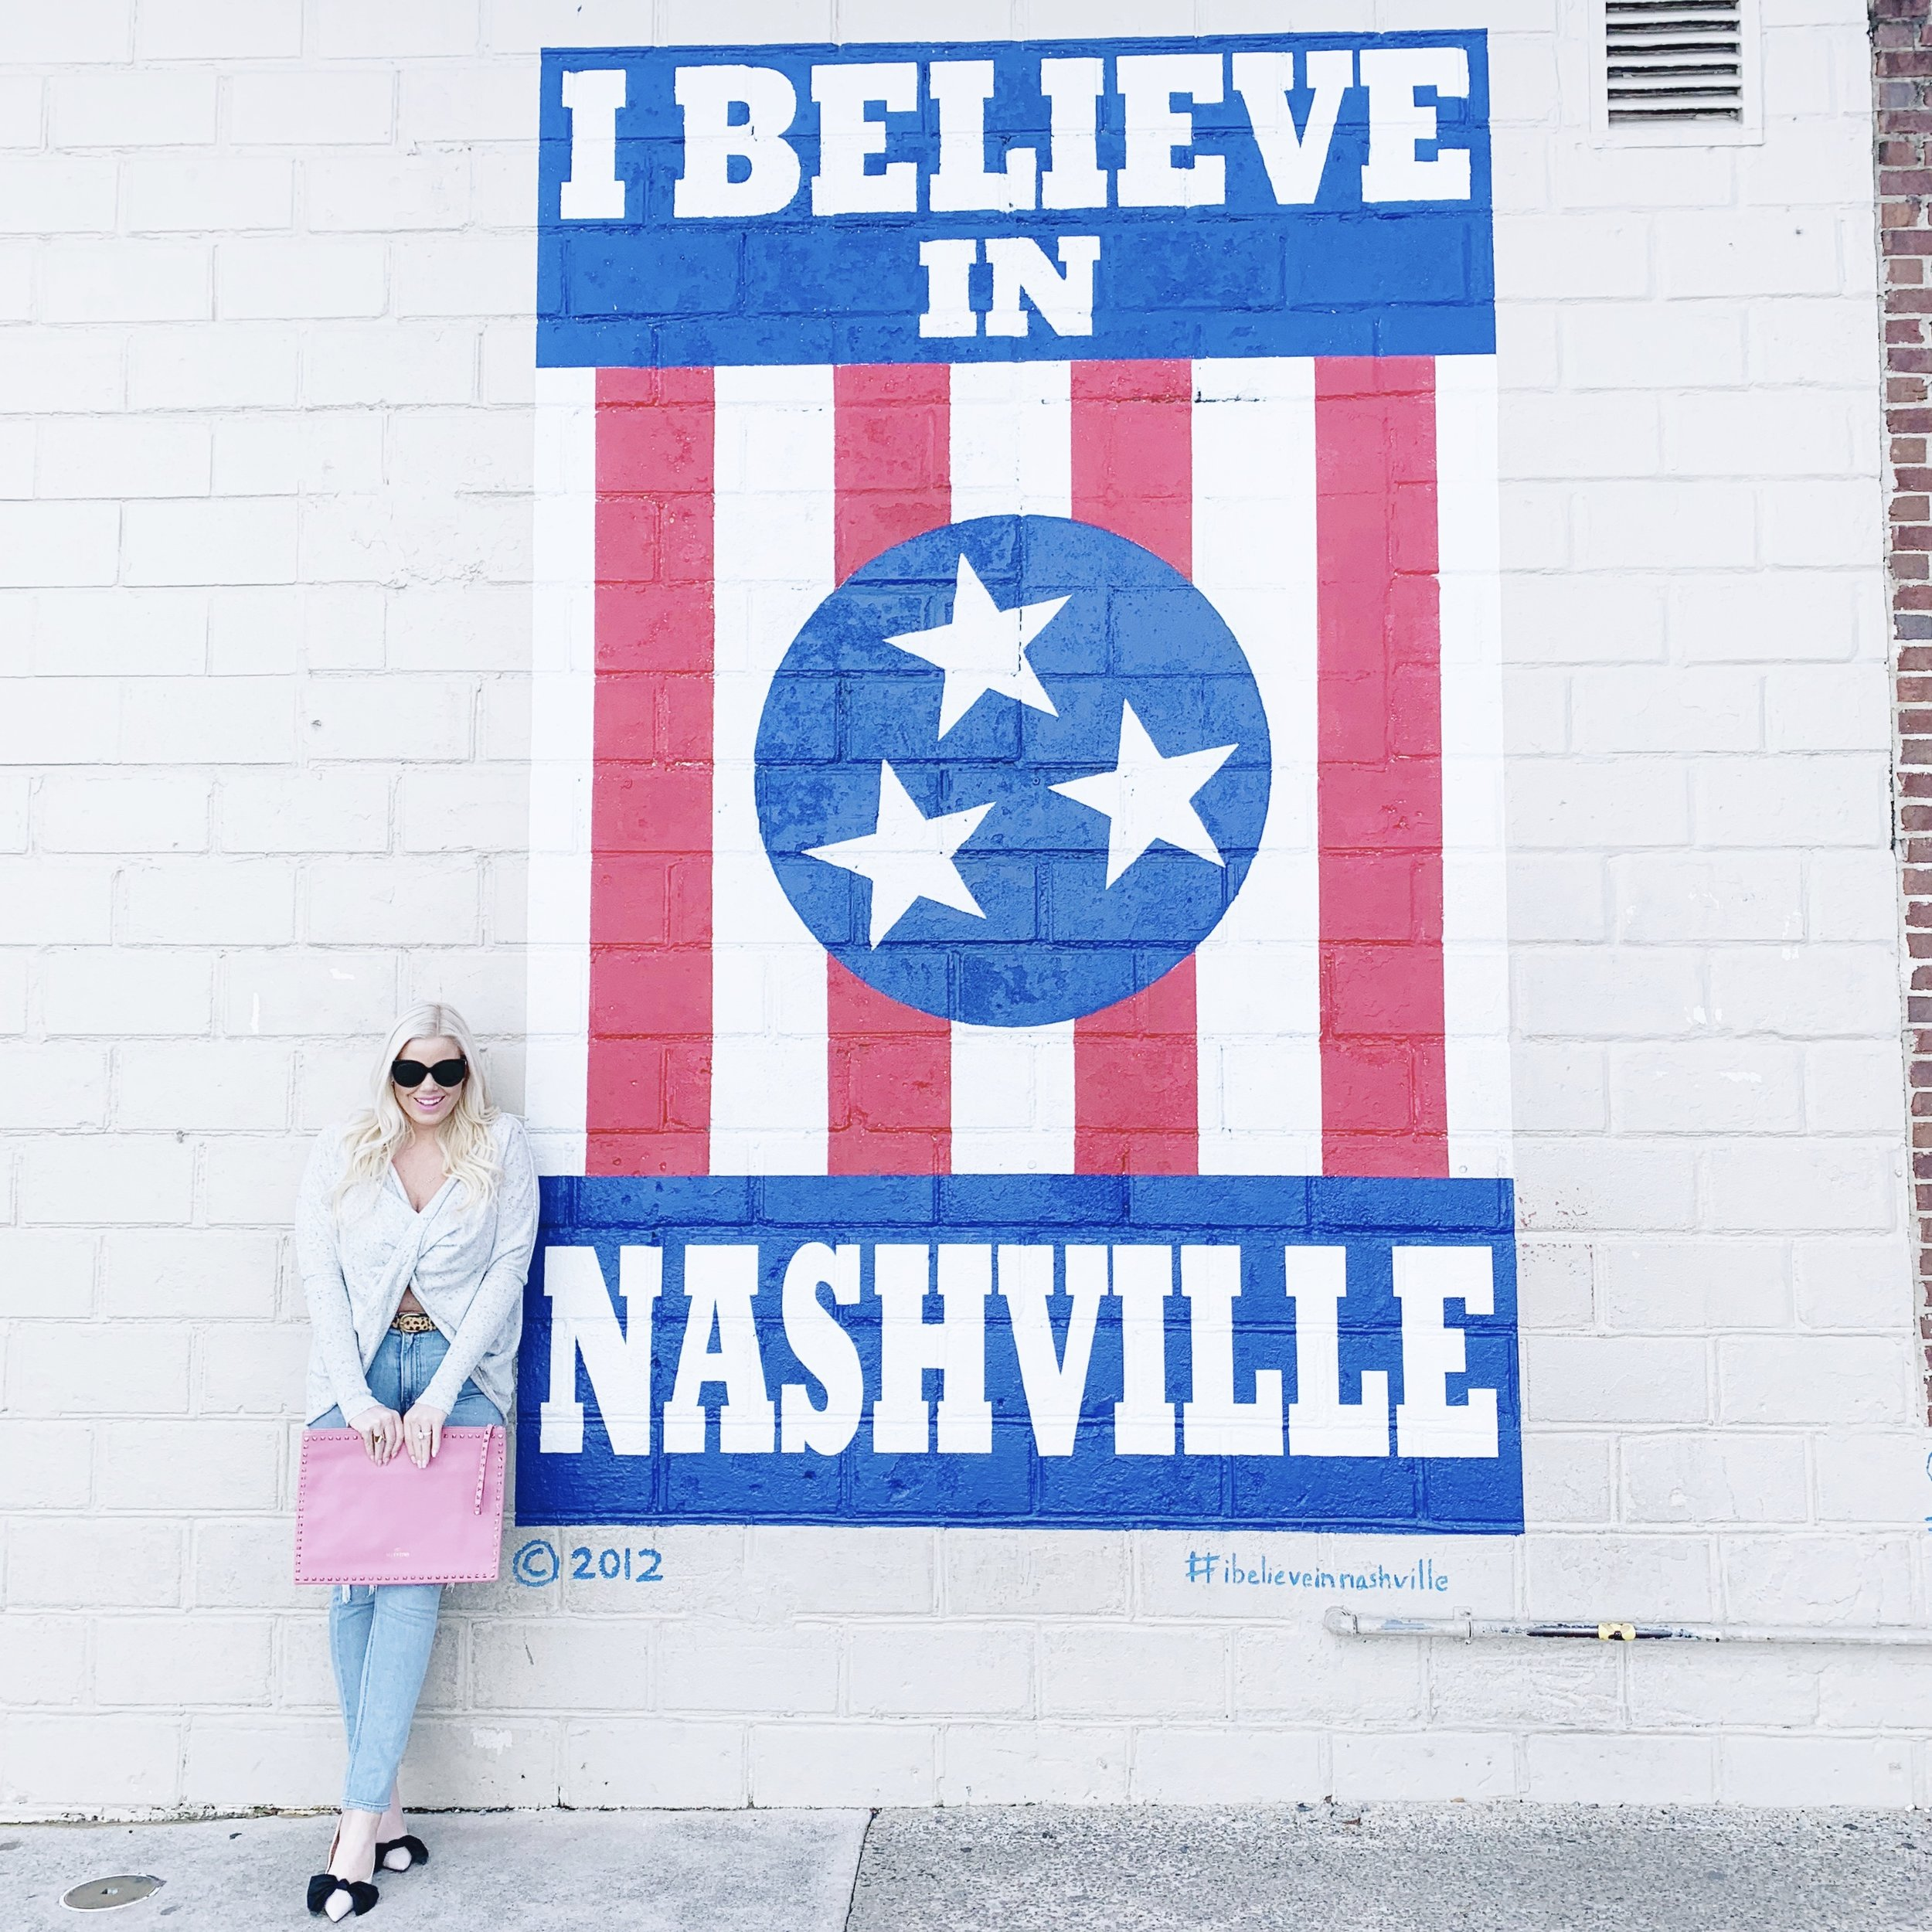 Caroline-Doll-travel-nashville.jpg